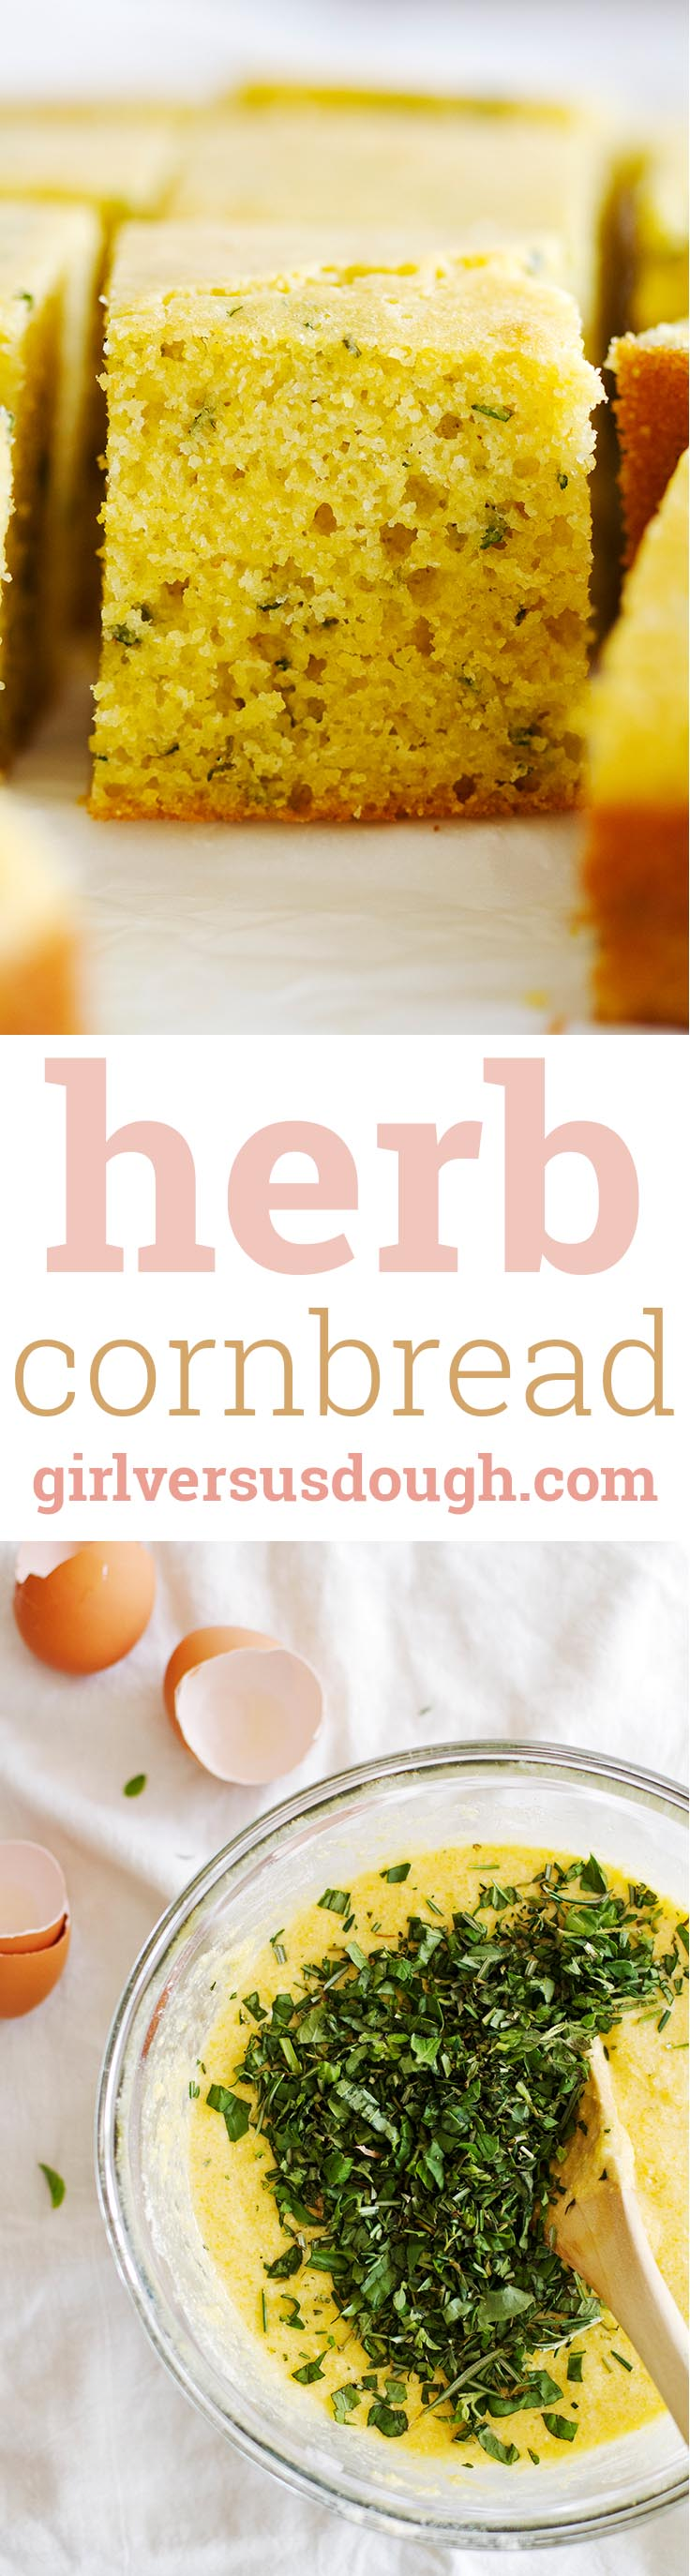 Herb Cornbread -- Incredibly moist, aromatic, flavorful and versatile herb cornbread. Delicious with soup or chili! girlversusdough.com @girlversusdough